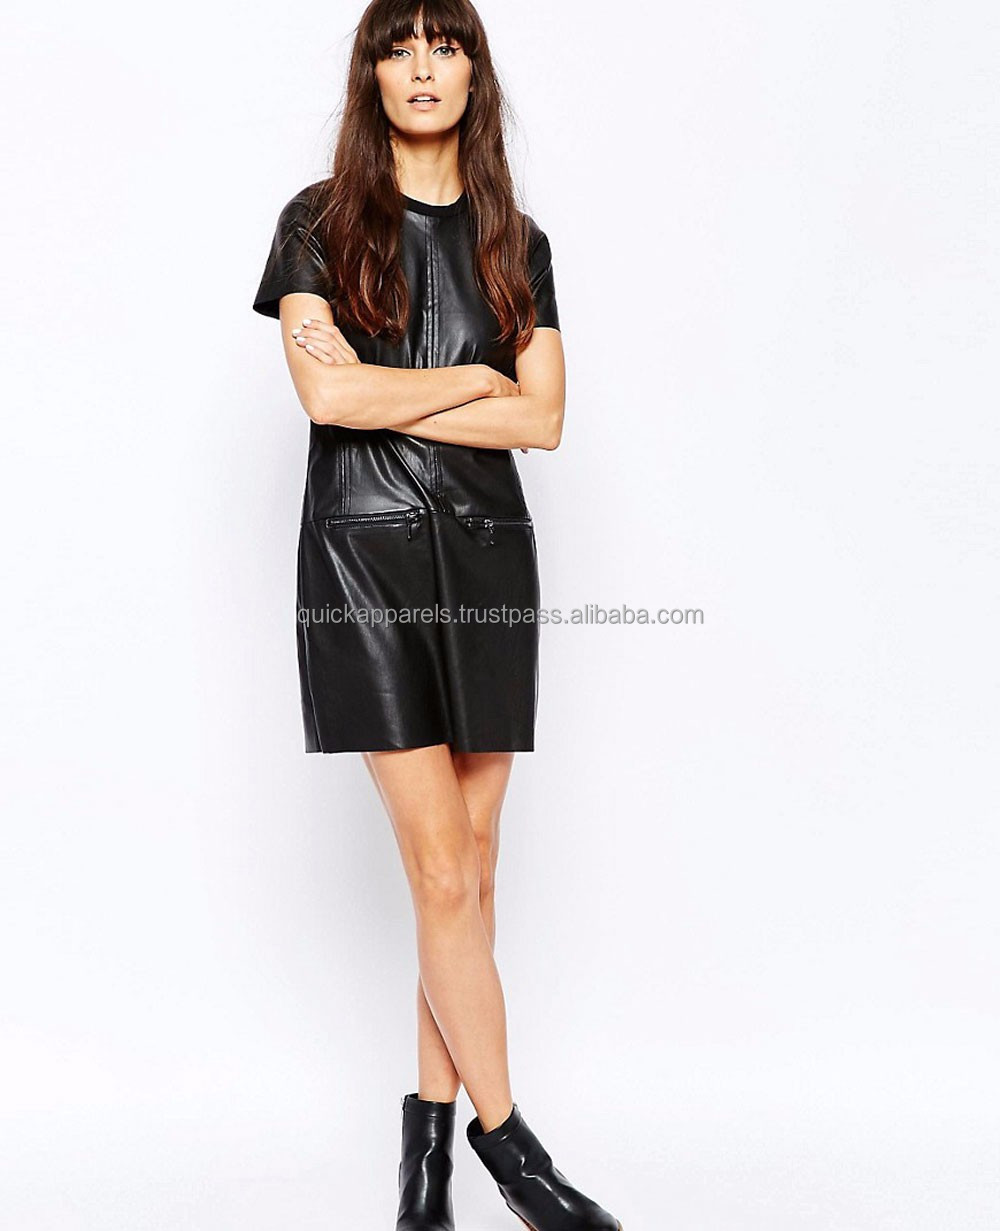 Latest Wholesale Unique Genuine Leather Sleeveless V-neck Dinner Dress